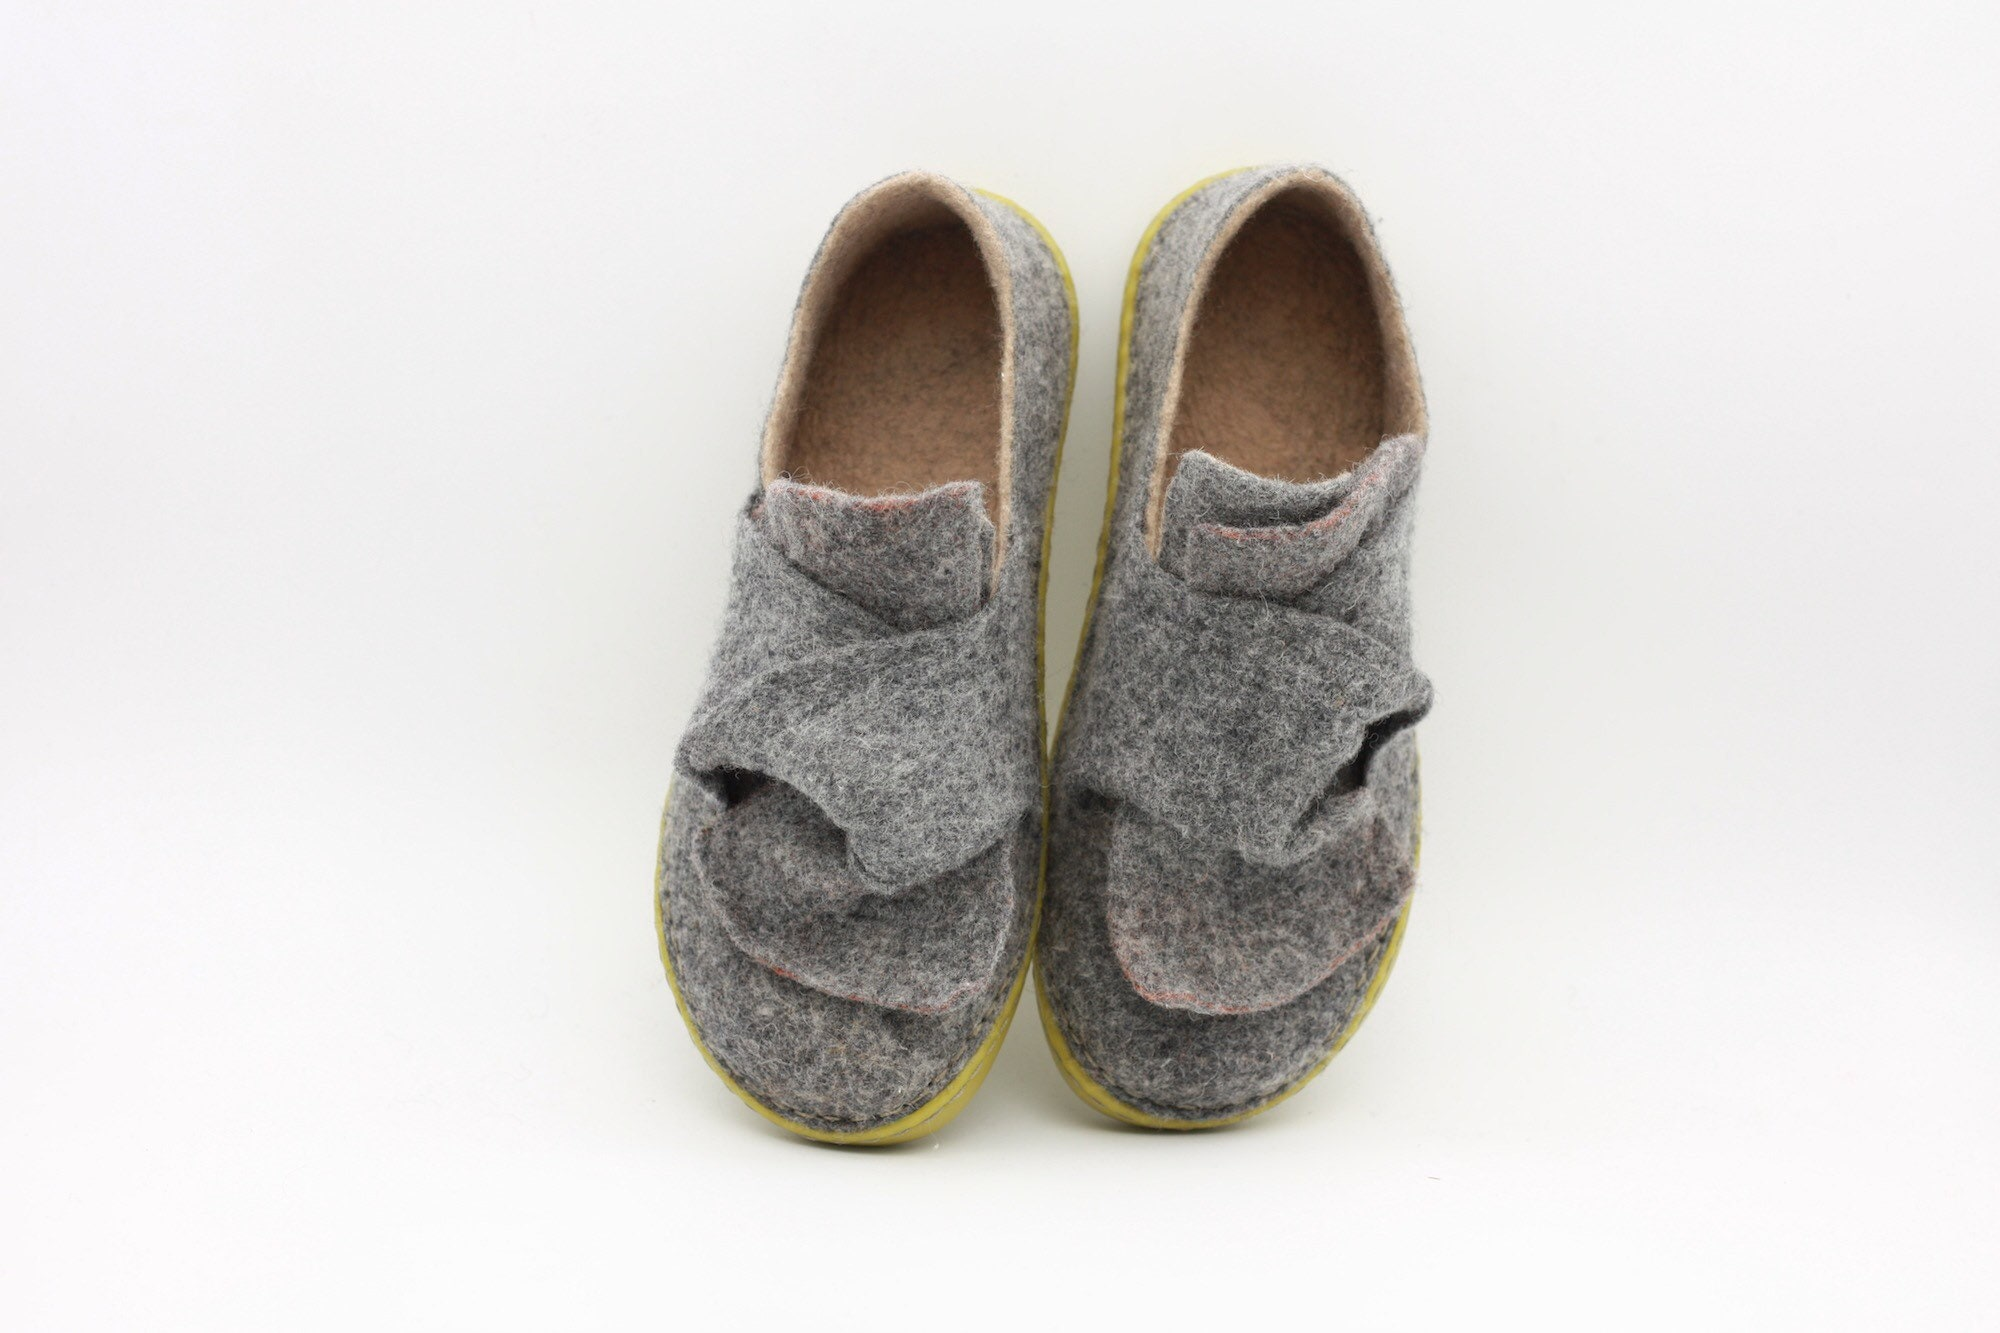 80369173720ac LUCIELALUNE EU38 US7.5 / Spring shoes elegant gray loafer/ handmade felted  wool women shoes AS10a